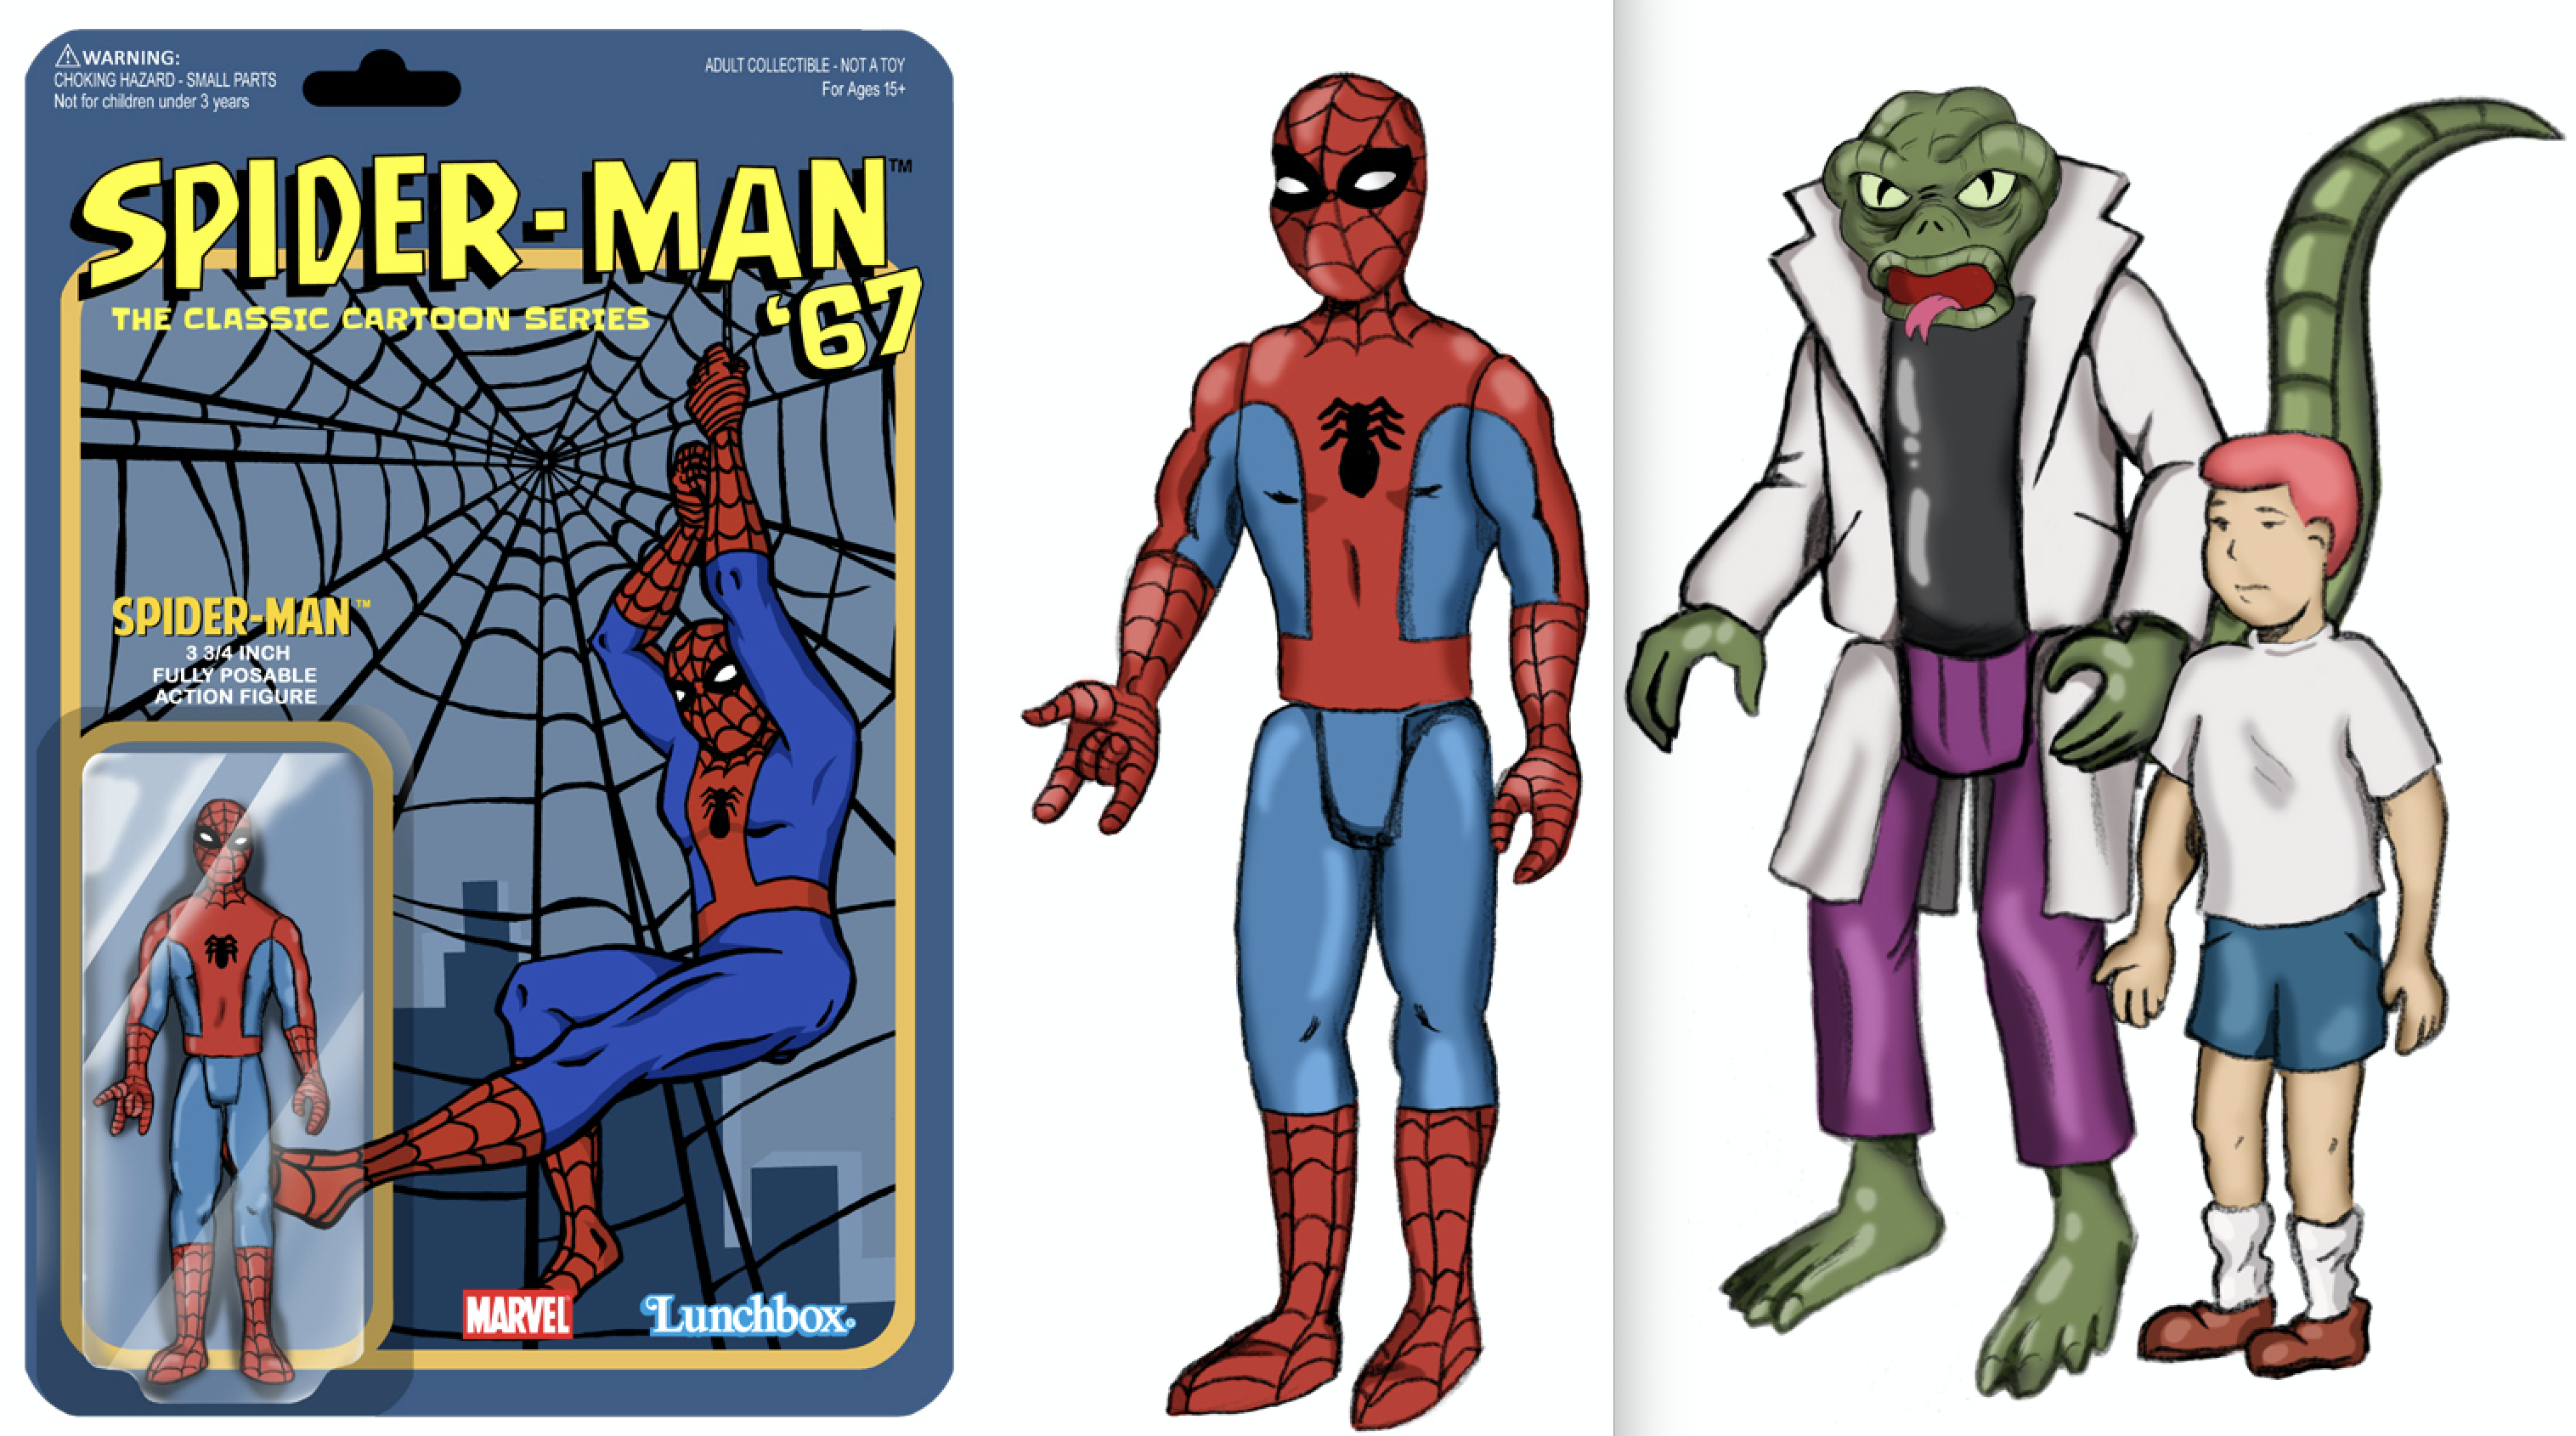 Dig These Groovy Spider Man 67 Cartoon Action Figure Designs 13th Dimension Comics Creators Culture